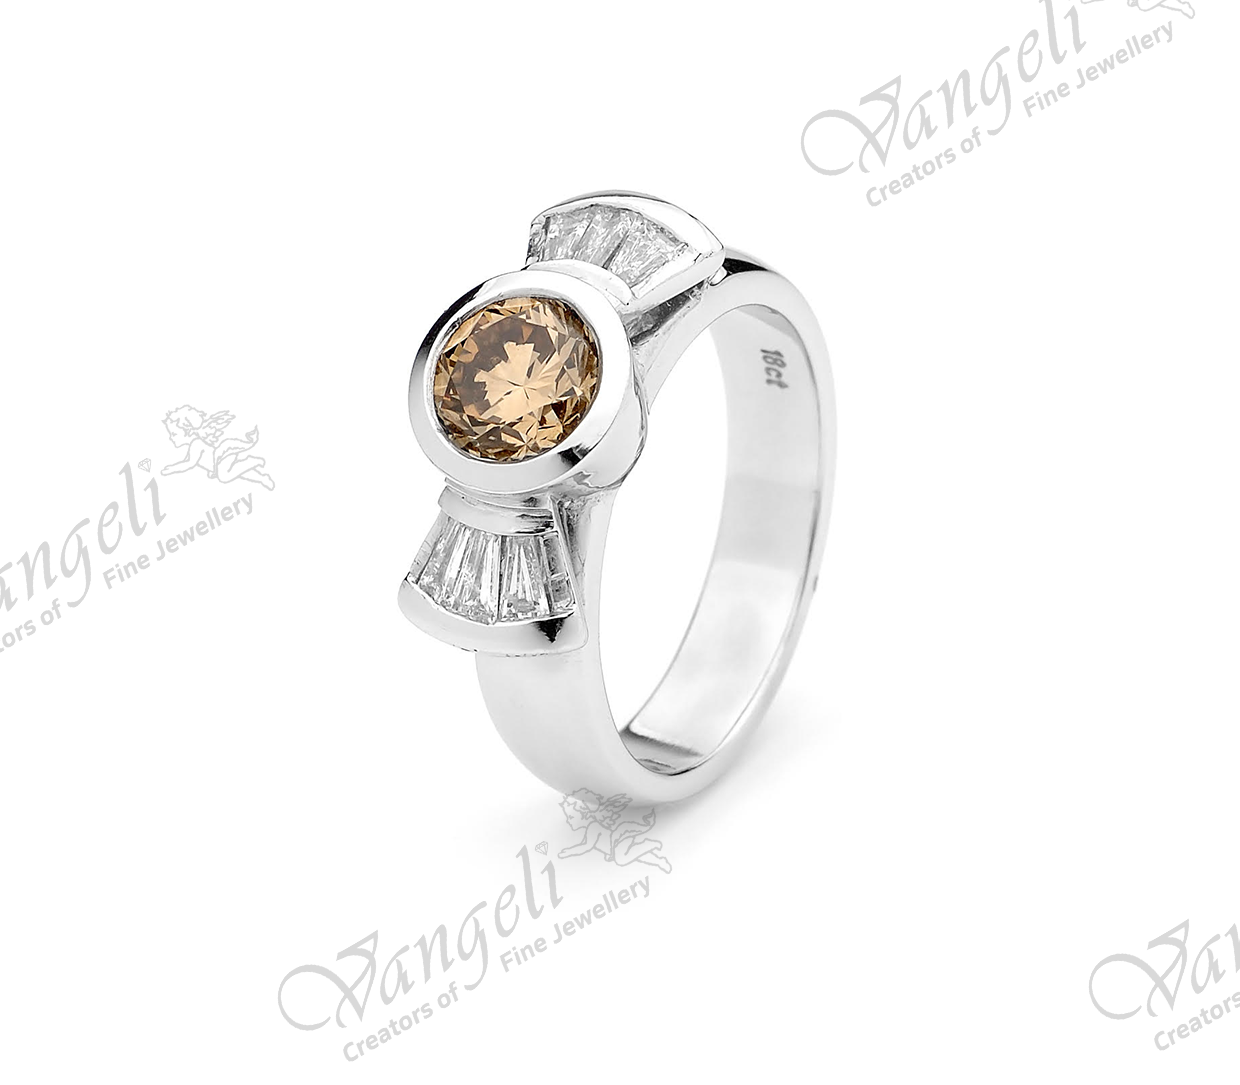 18ct white gold cognac diamond with tapering baguette diamonds